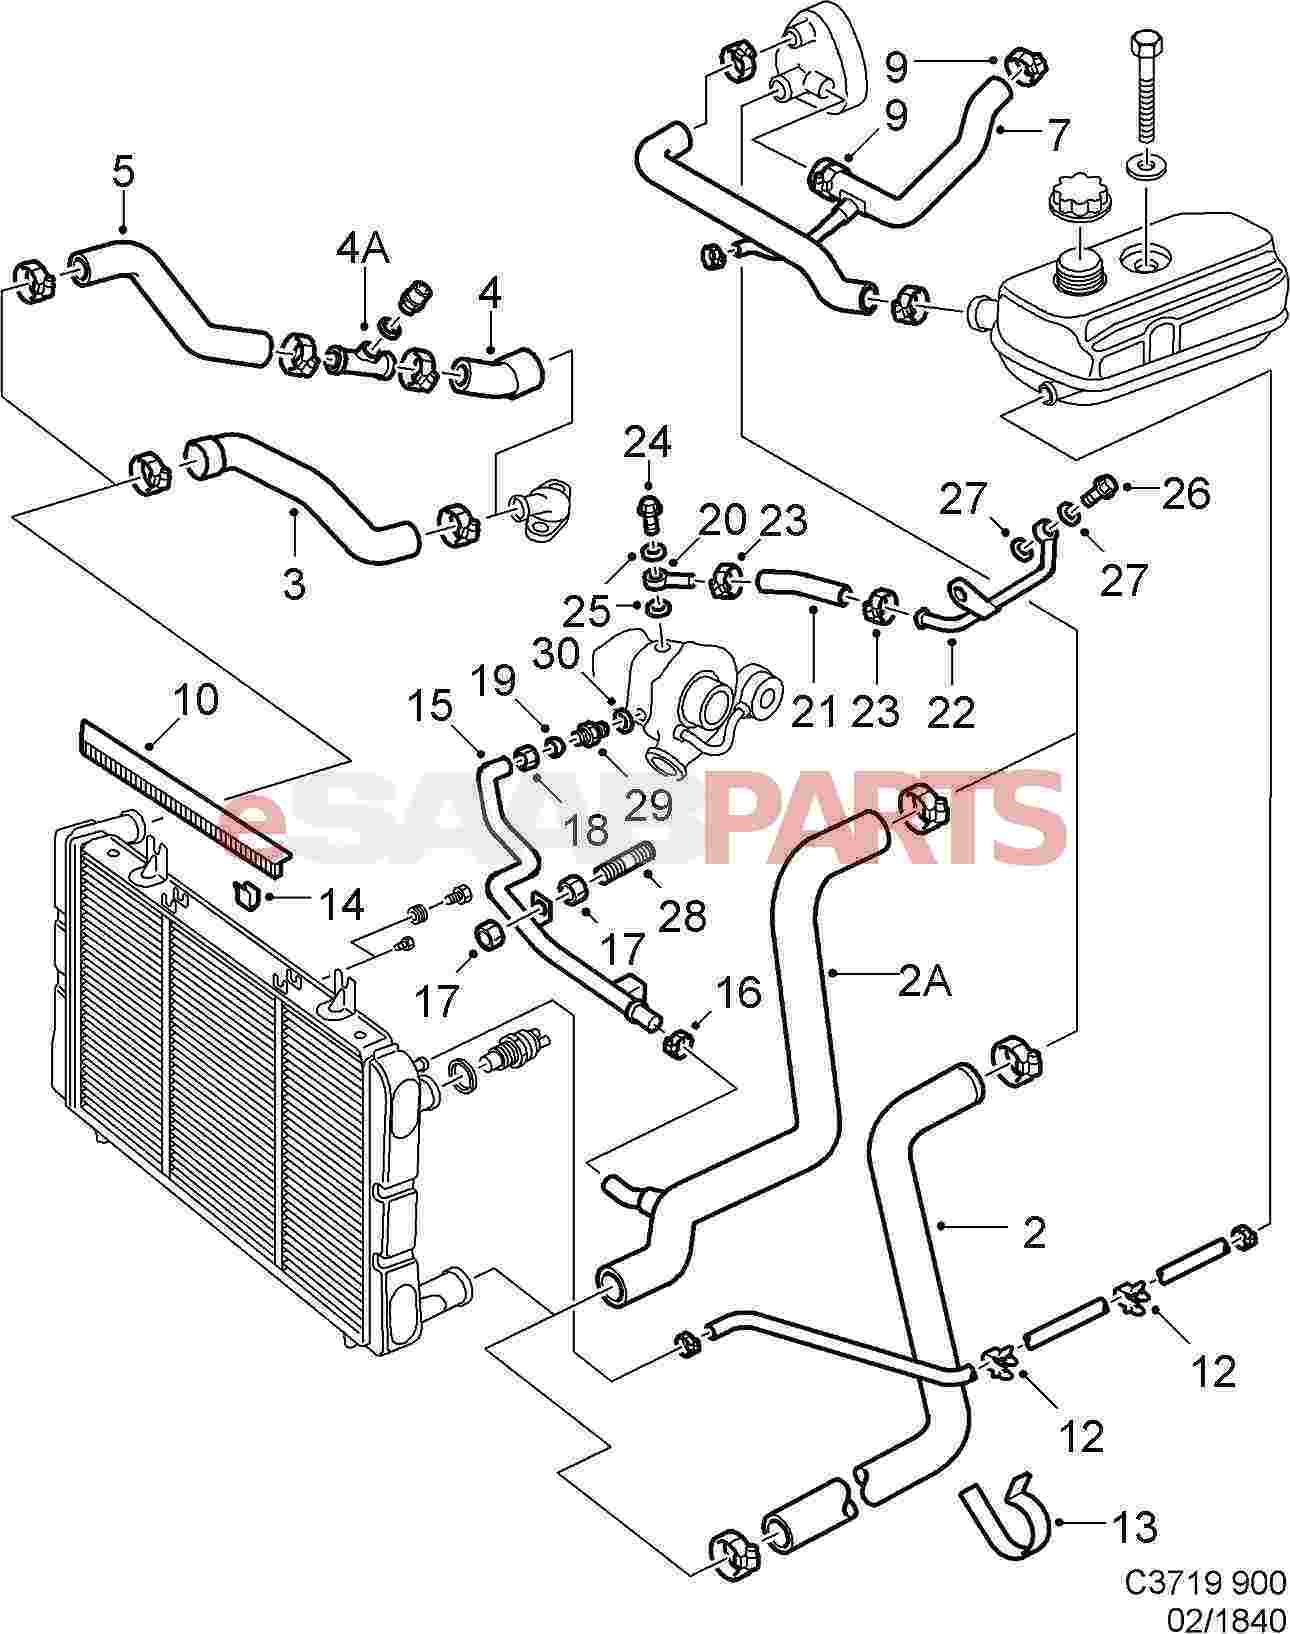 Fabulous 2011 Vw Jetta Engine Diagram Wiring Library Wiring Cloud Nuvitbieswglorg